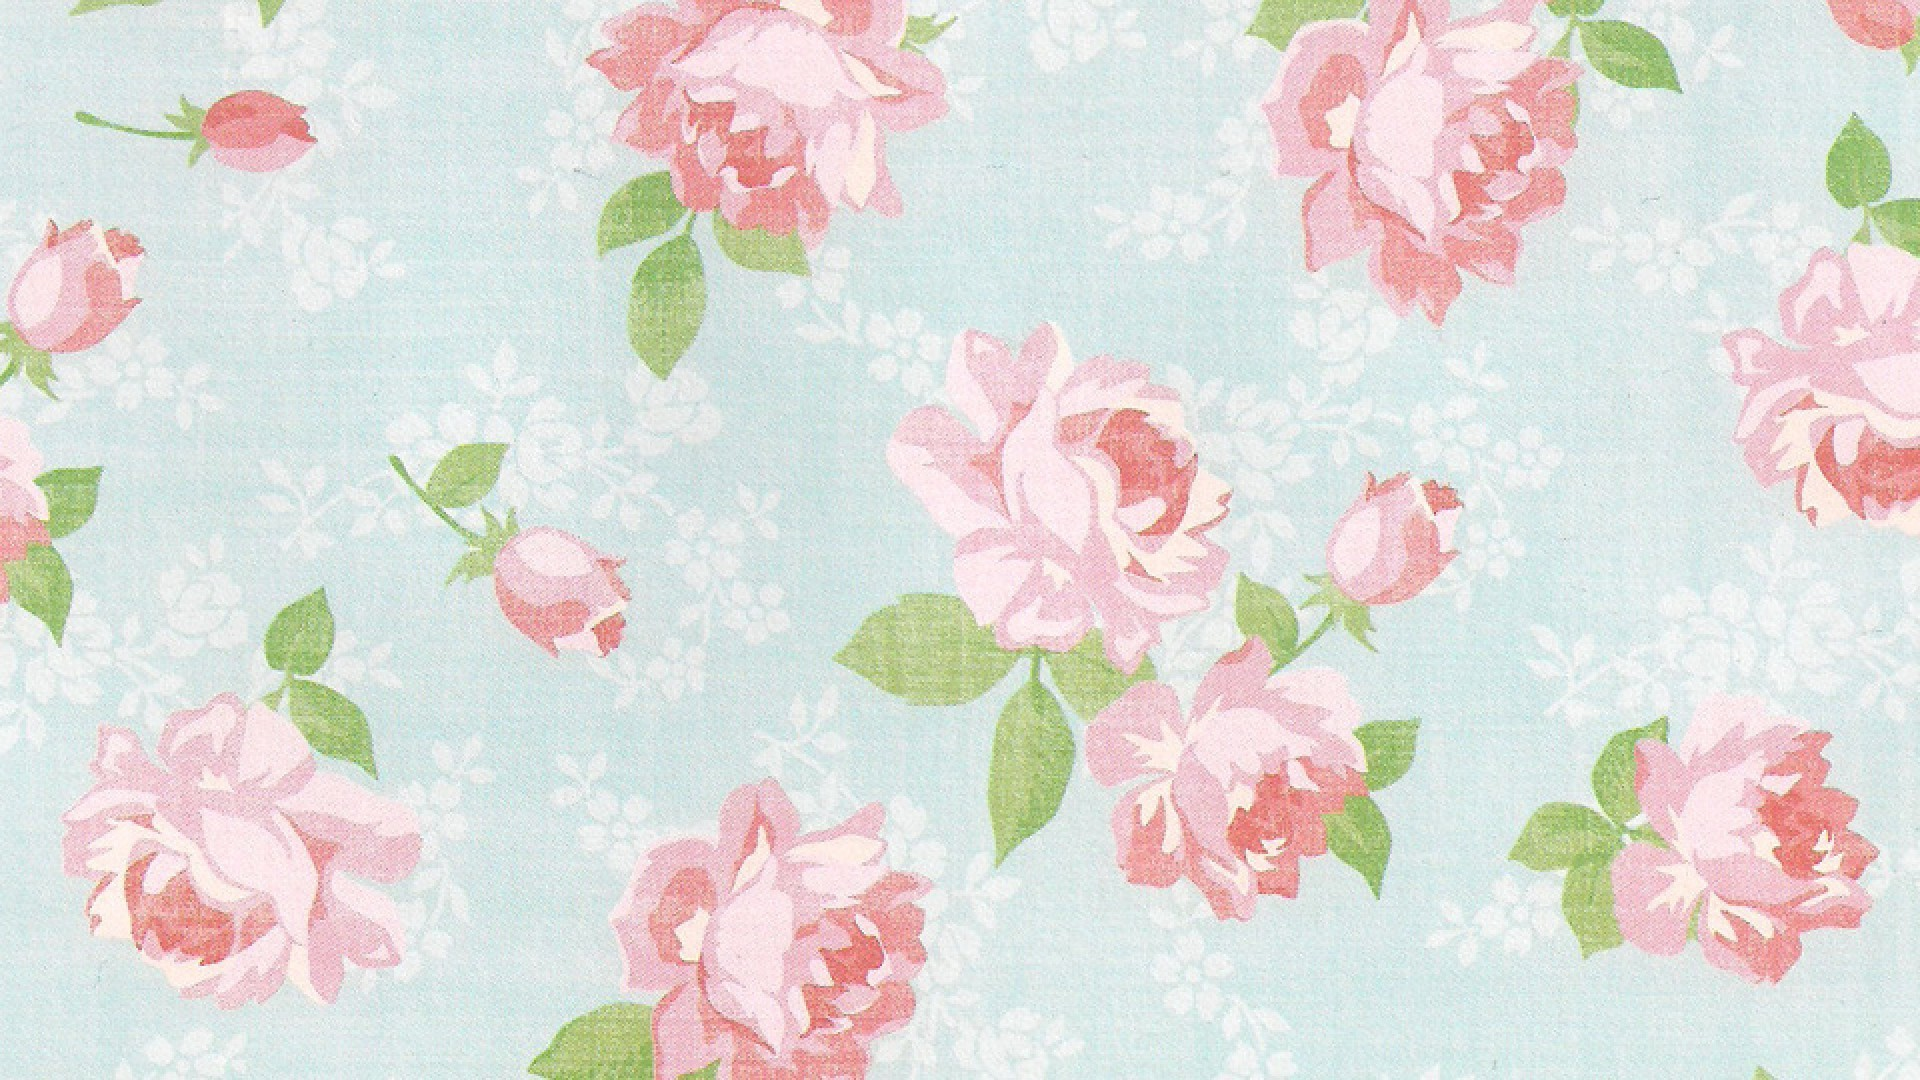 Vintage Floral Wallpaper Download Free Cool High Resolution